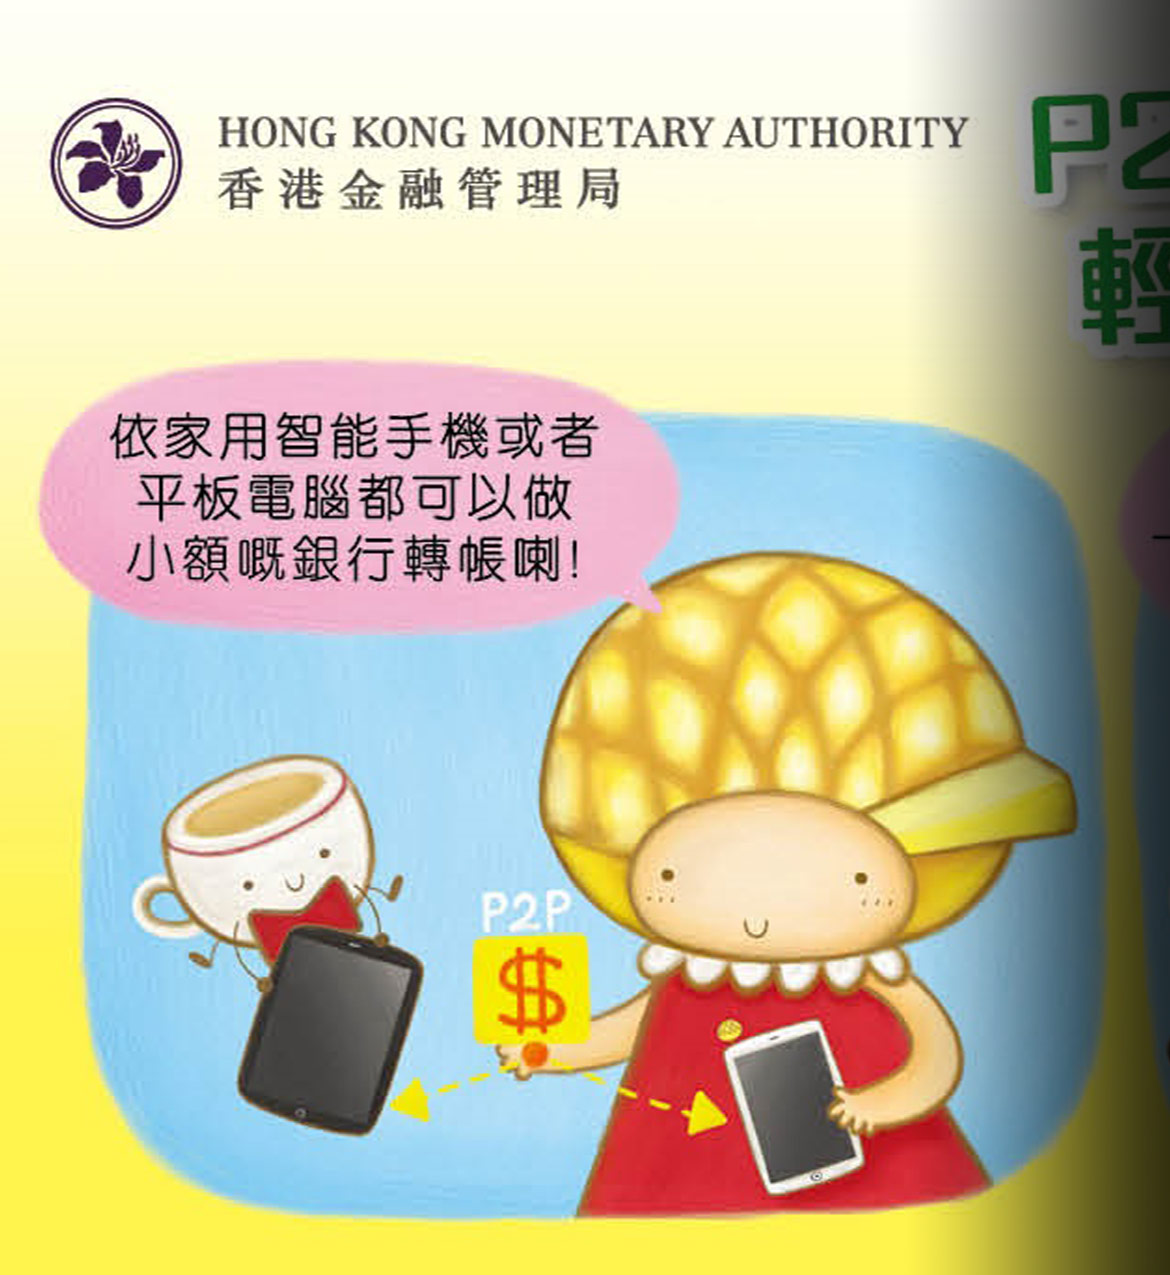 Comics - P2P Small-Value Funds Transfer Service (Chinese only)